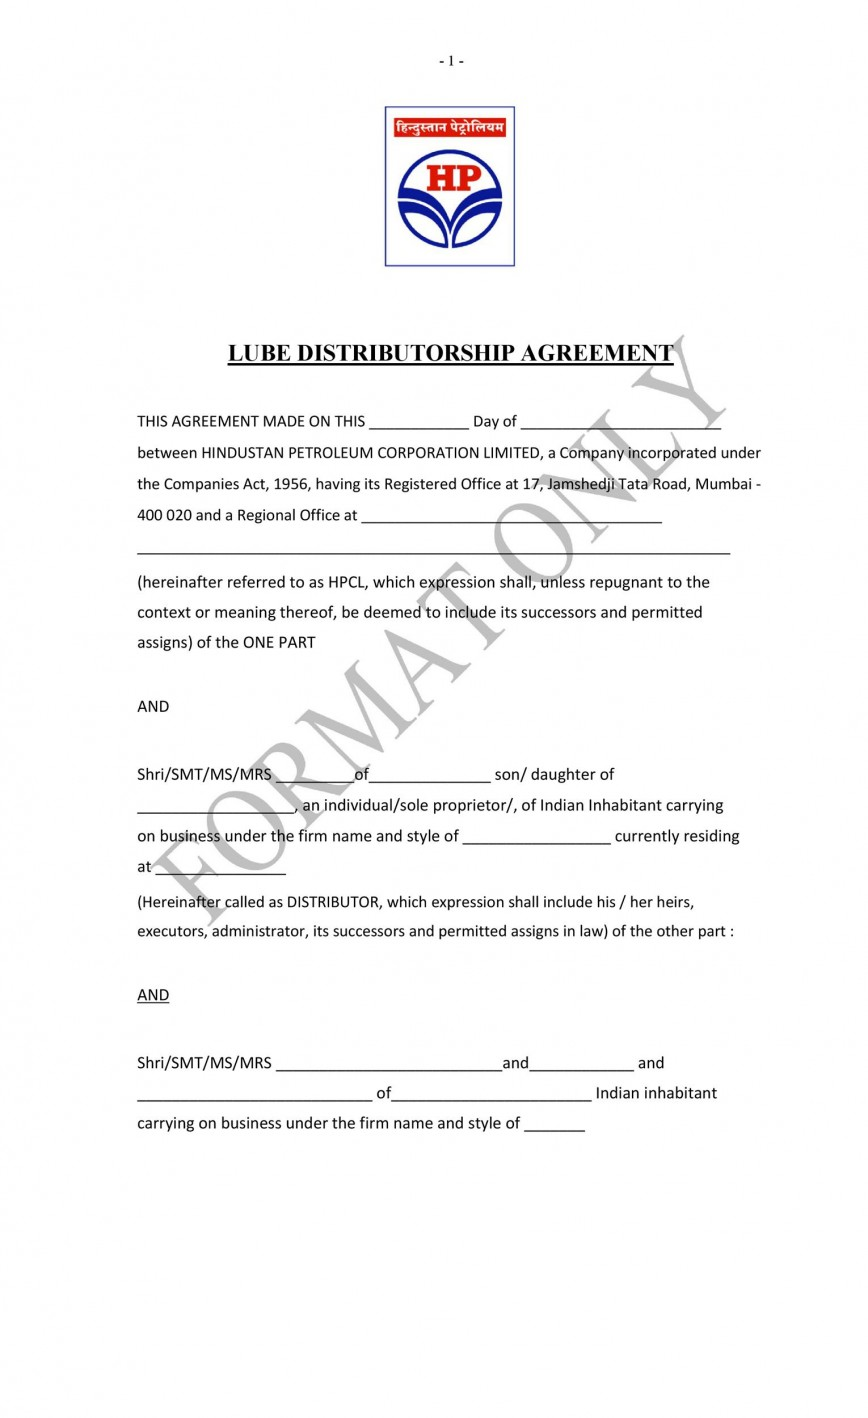 007 Incredible Exclusive Distribution Contract Template High Resolution  Non Agreement Distributor Free Australia